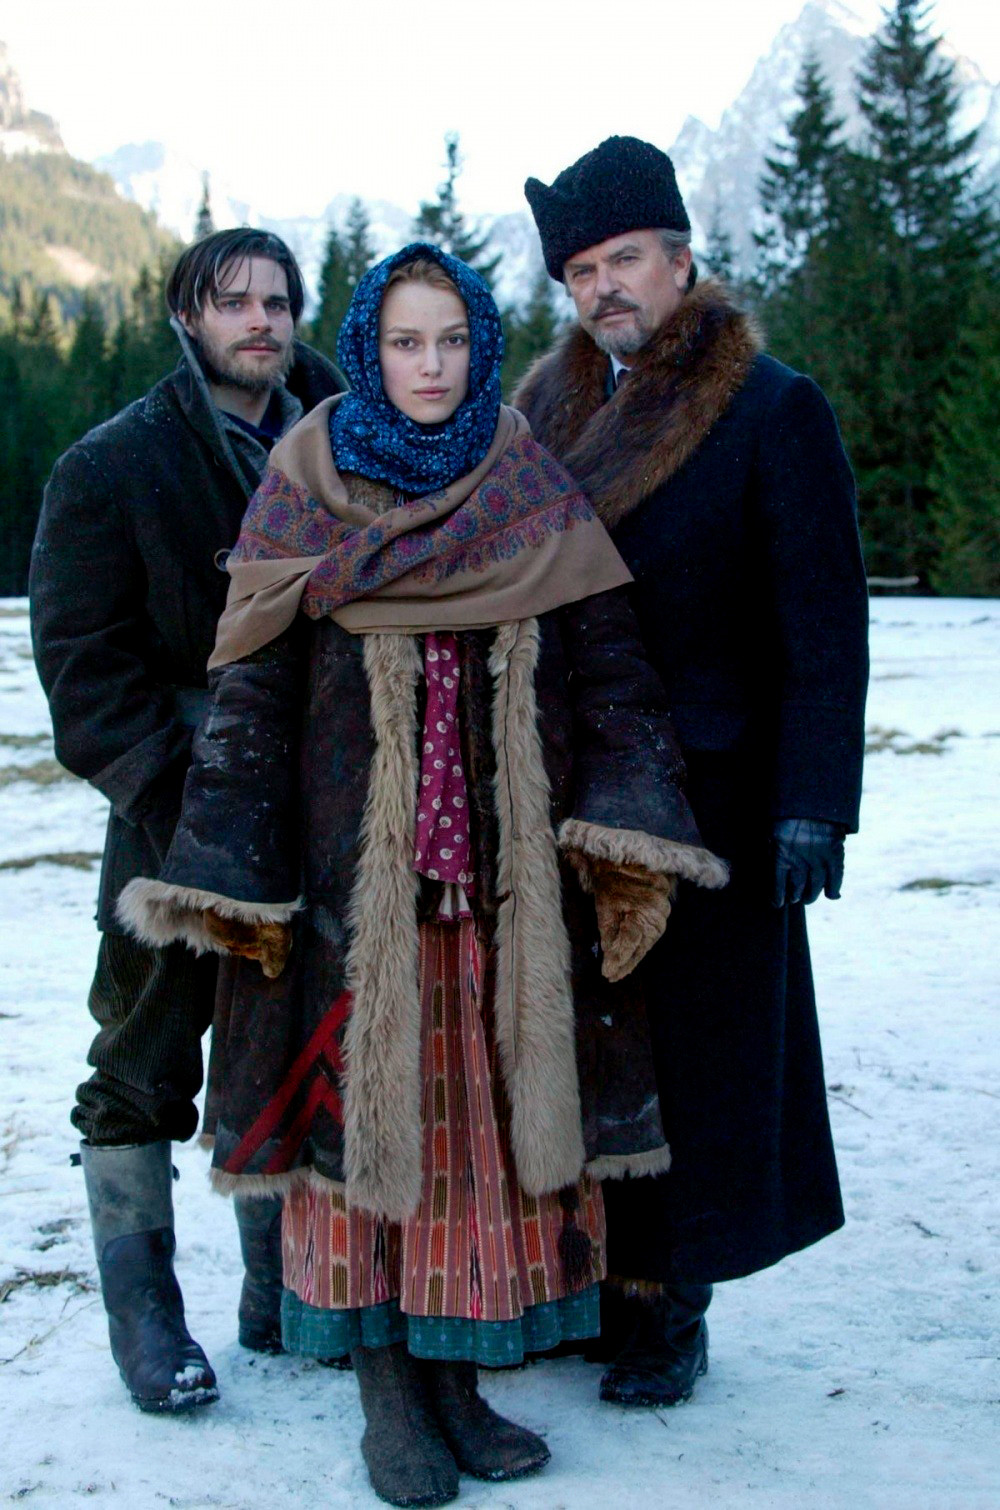 Hans Matheson (R) portrayed Zhivago in the 2002 mini-series by Giacomo Campiotti.